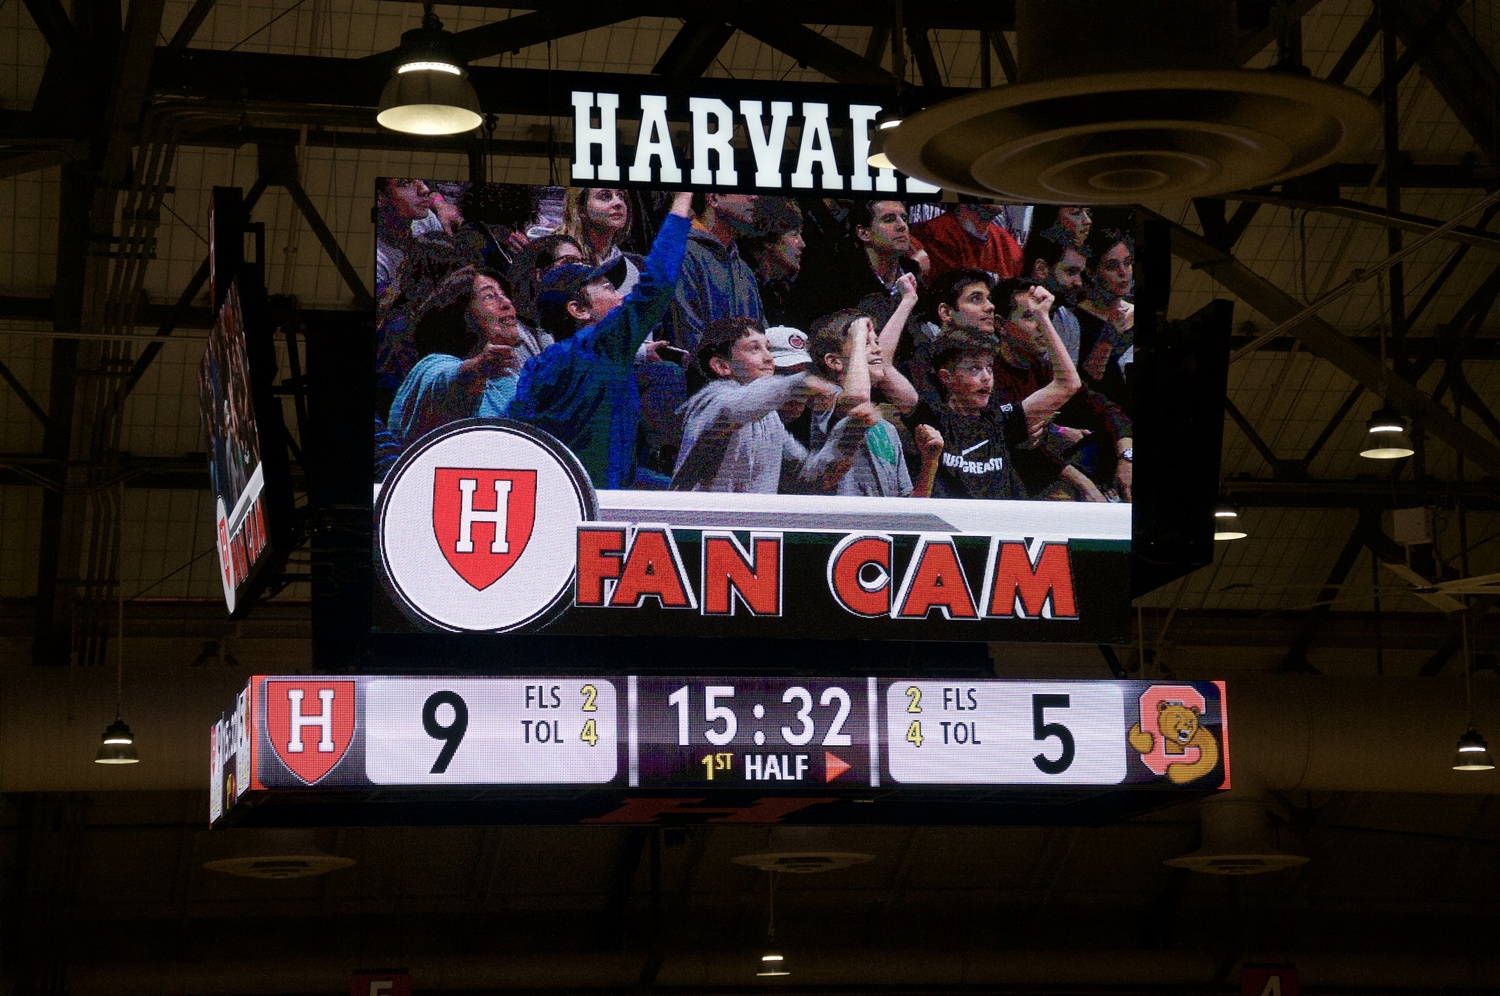 Fans attending games at Lavietes Pavilion can now engage through interactive activities during breaks, such as being featured on the Fan Cam.